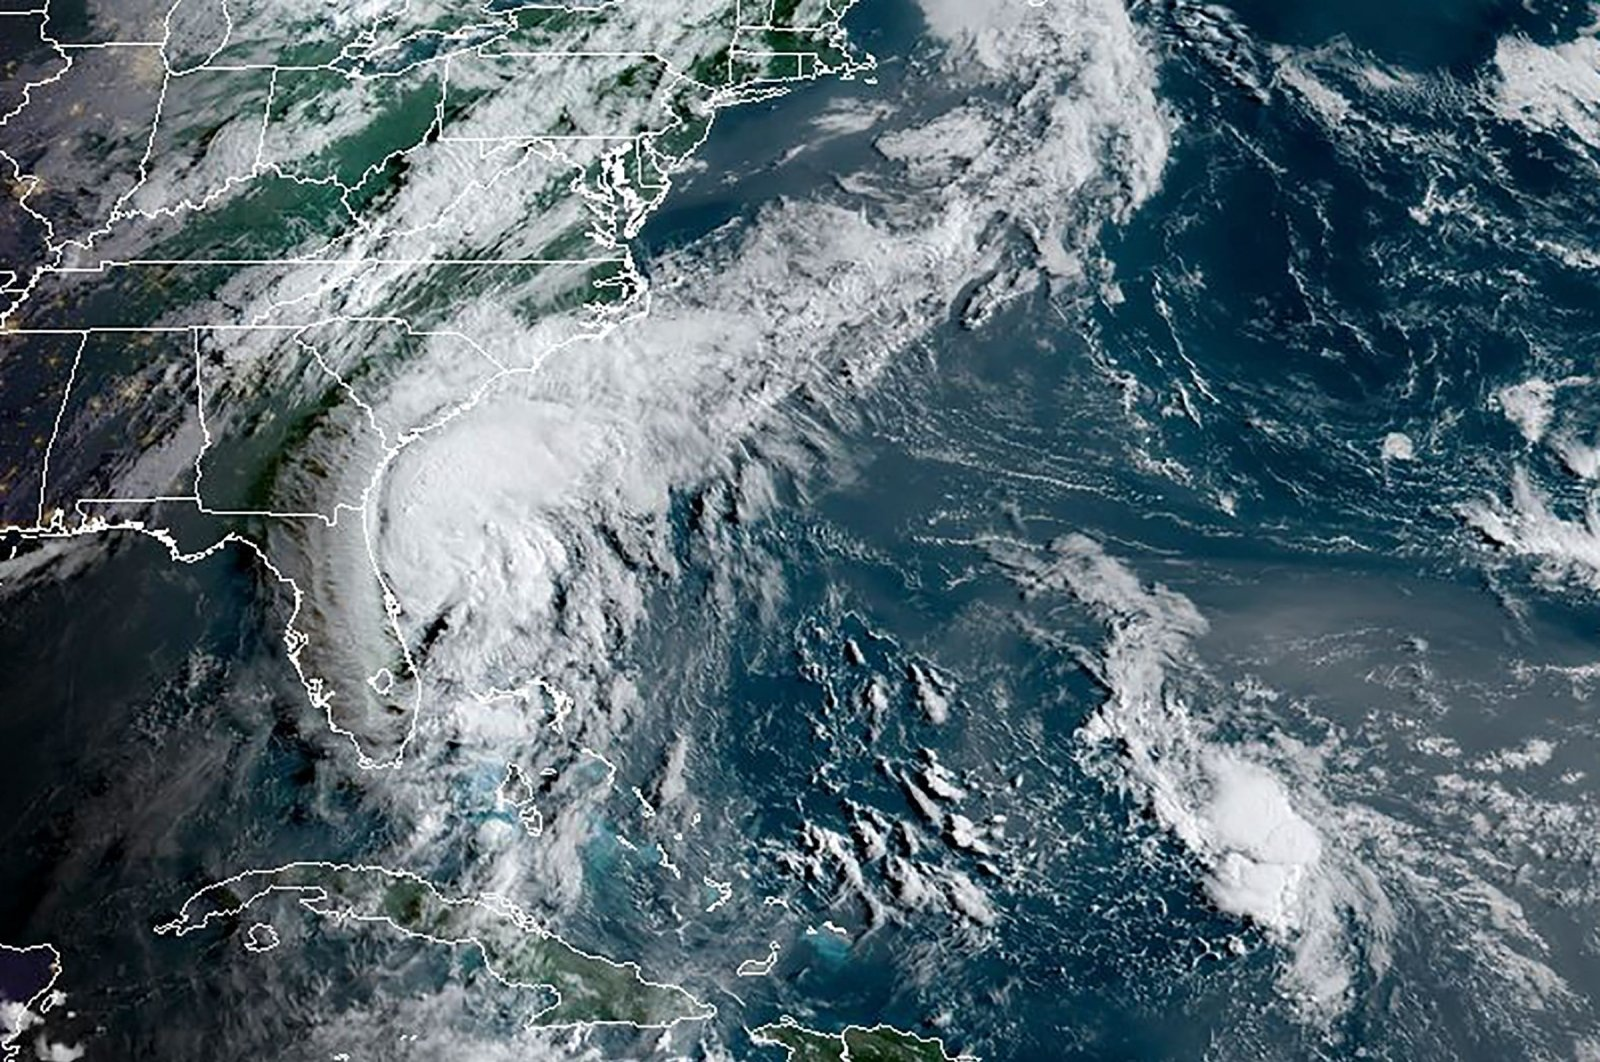 Tropical storm Isaias is seen off the southeast coast of the U.S. in the Atlantic Ocean in this RAMMB/NOAA satellite image obtained Aug. 3, 2020. (RAMMB/NOAA handout via AFP)